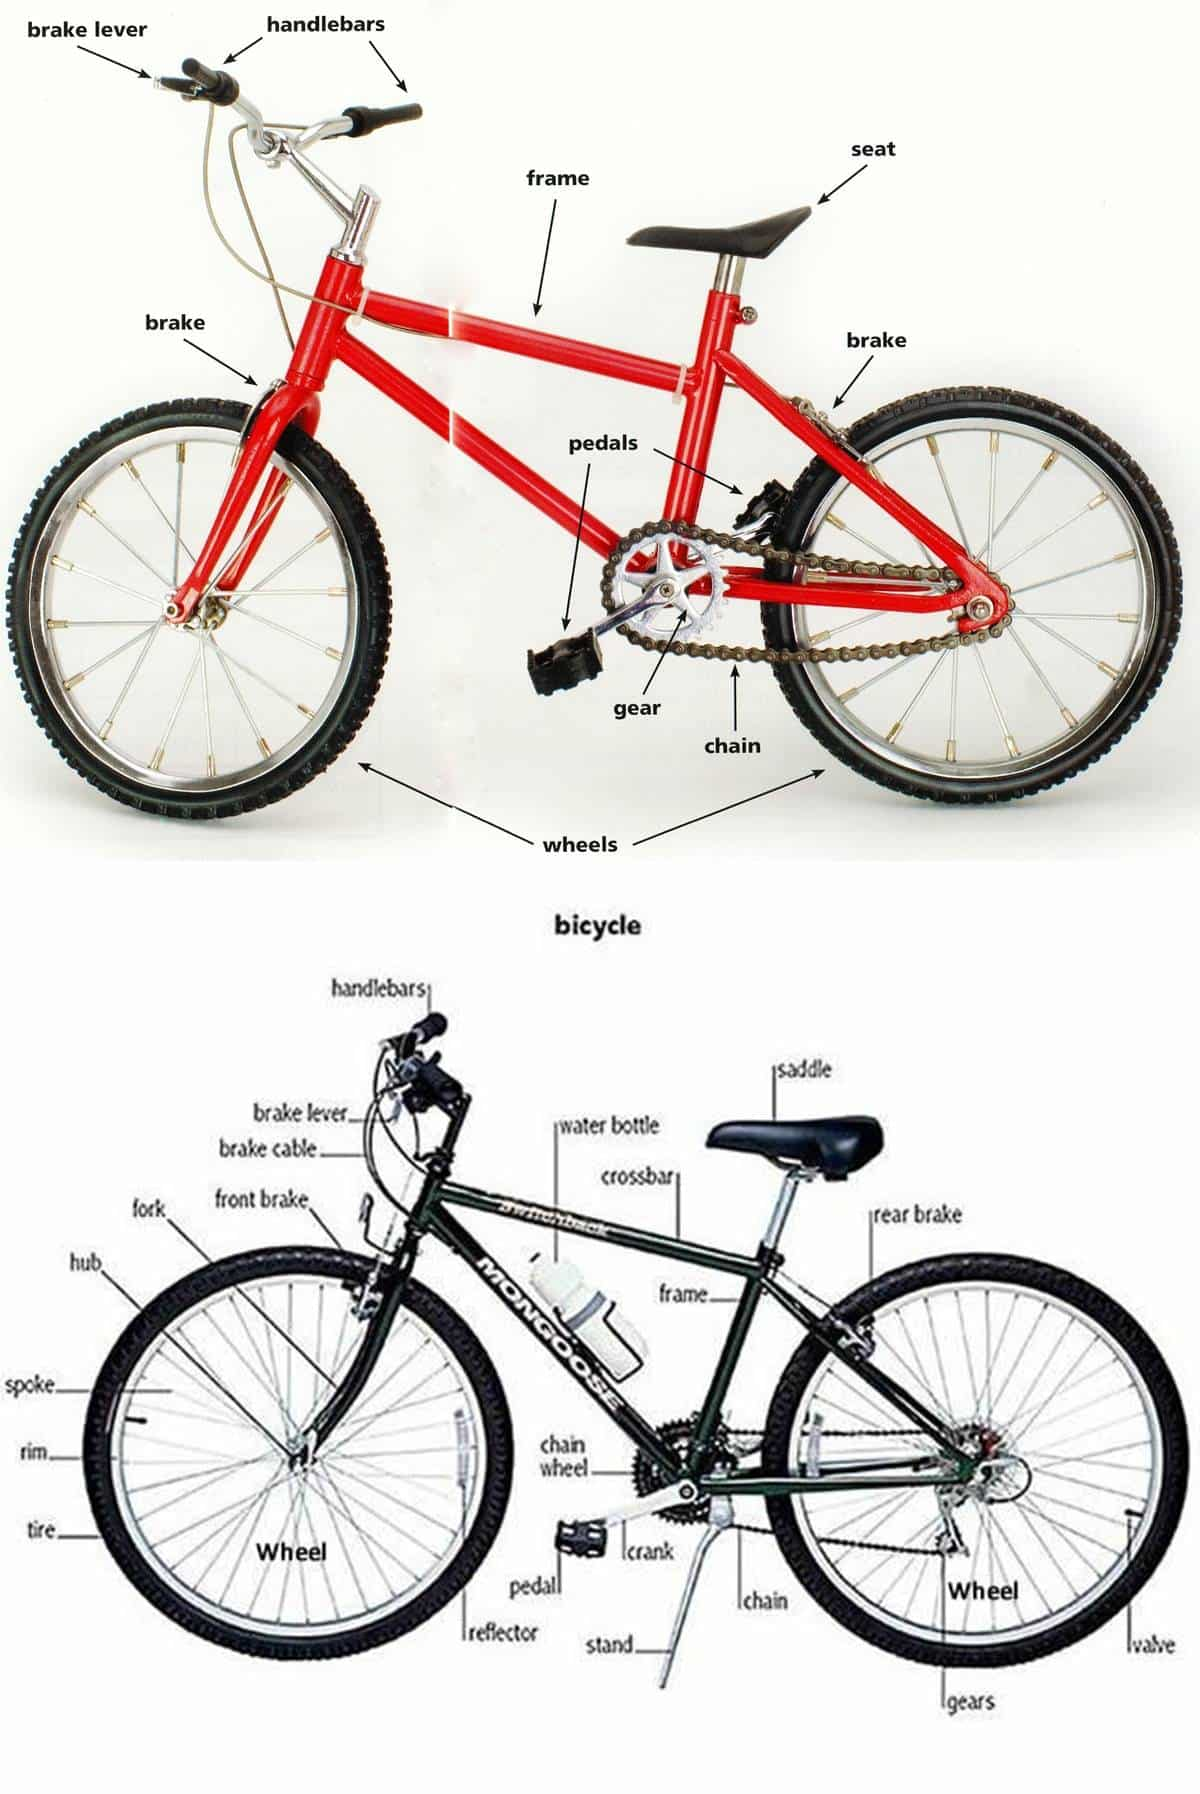 Parts of a Bicycle & Their Functions